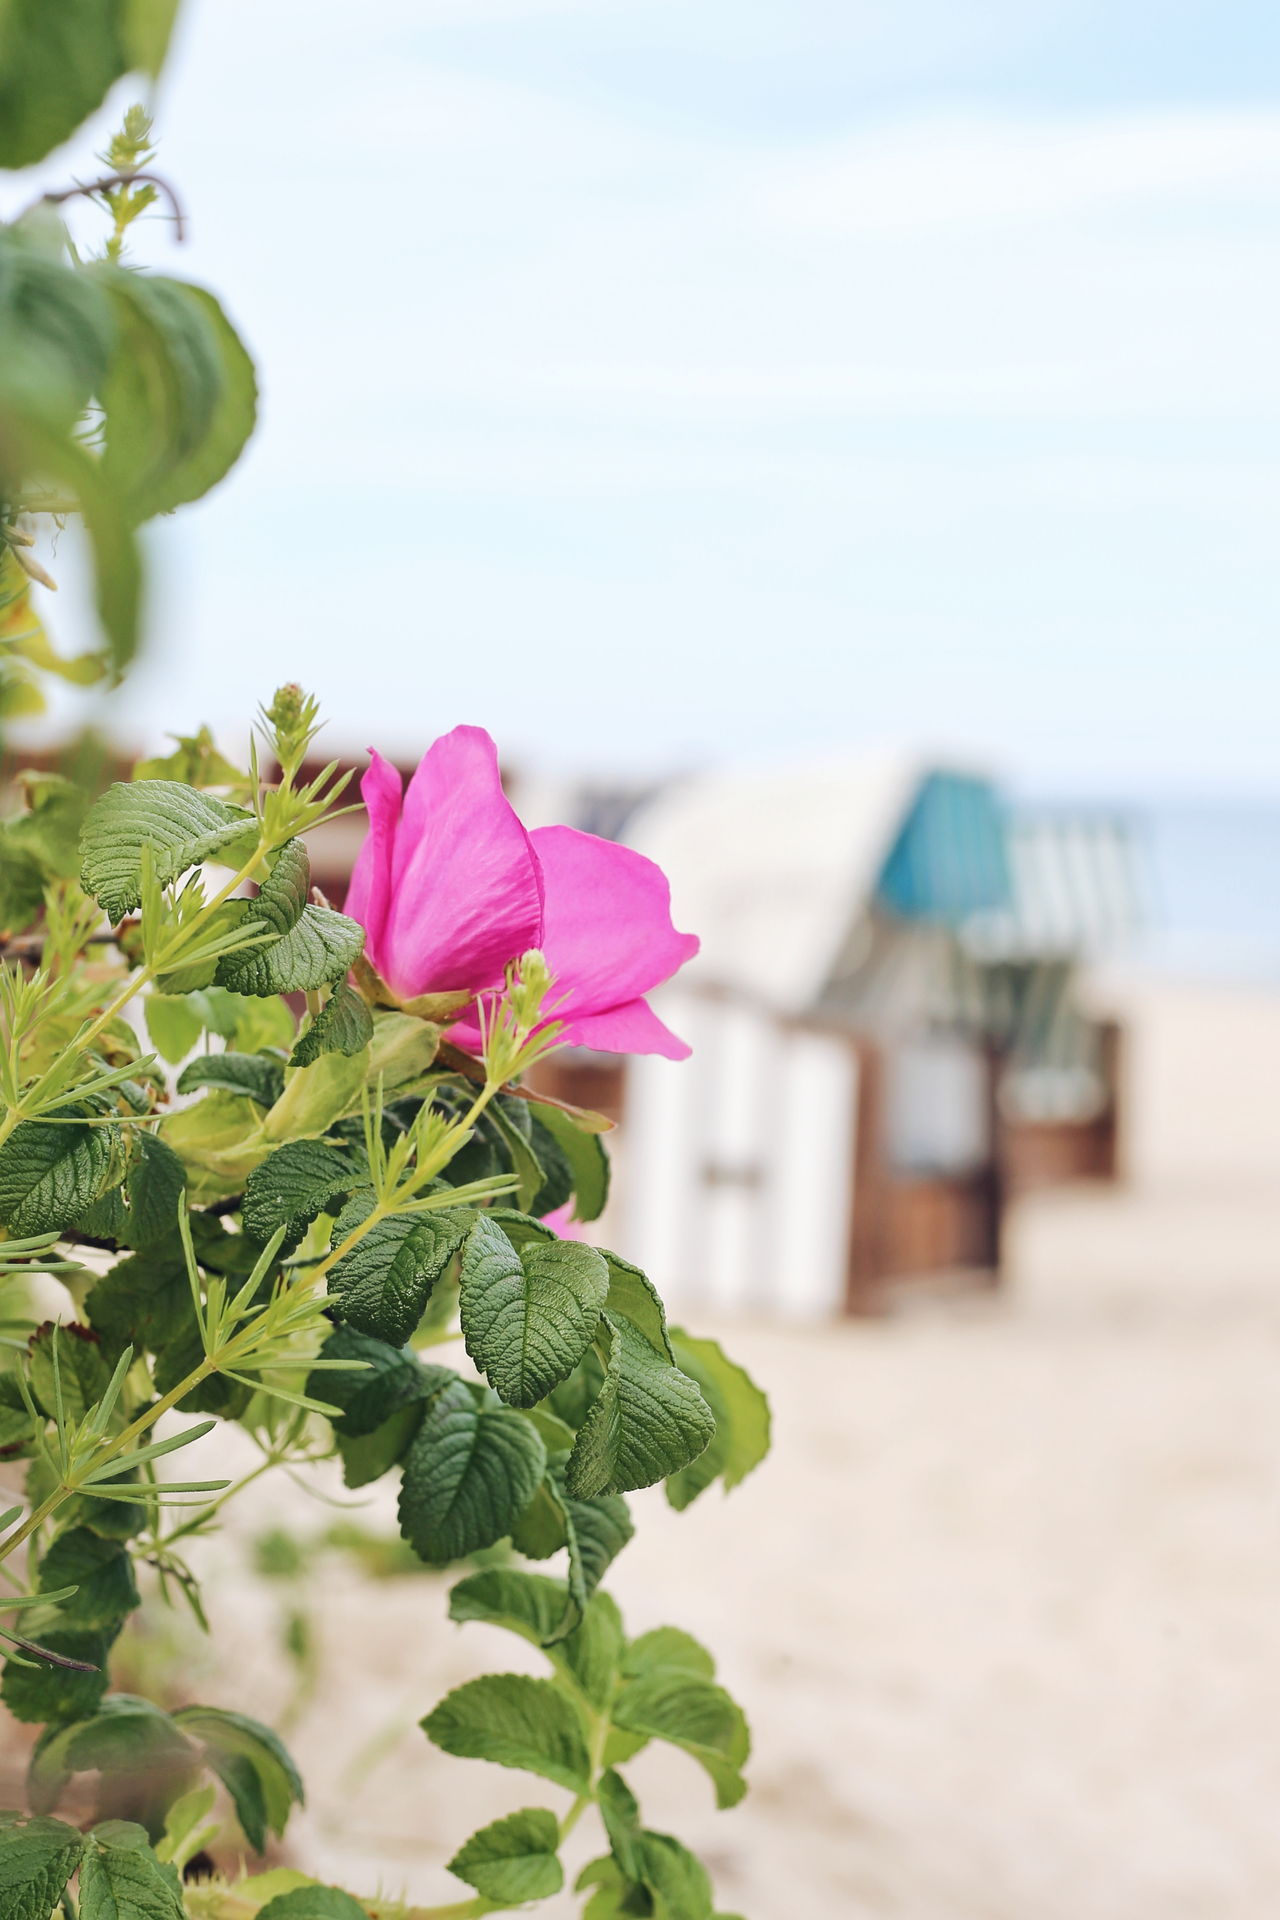 Beach Sea Sand Water Summer Pink Color Outdoors Vacations Nature Day Horizon Over Water No People Tranquility Beauty In Nature Green Color Sky Travel Destinations Leaf Flower Close-up Vacations Freshness Pastel Colored